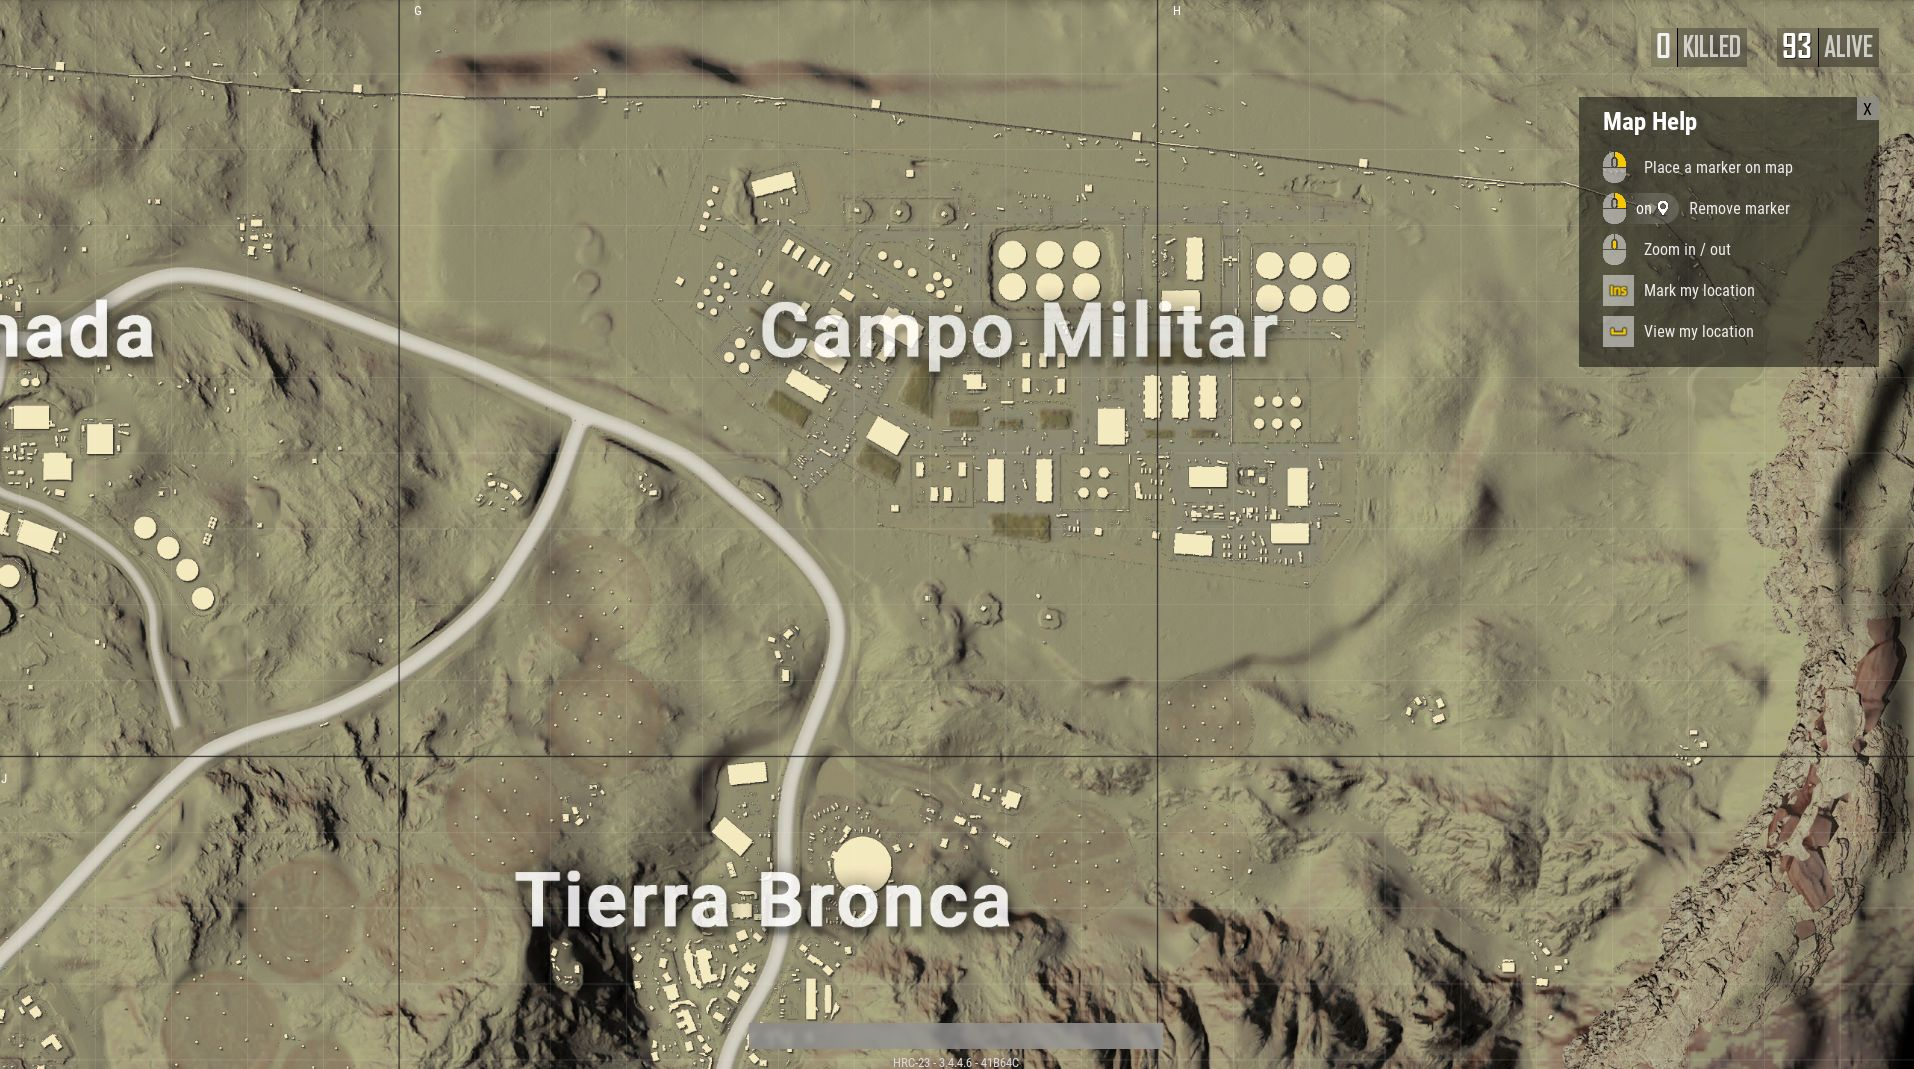 PUBG Desert Map Guide How To Win On The Miramar Desert Map All - My location height above sea level